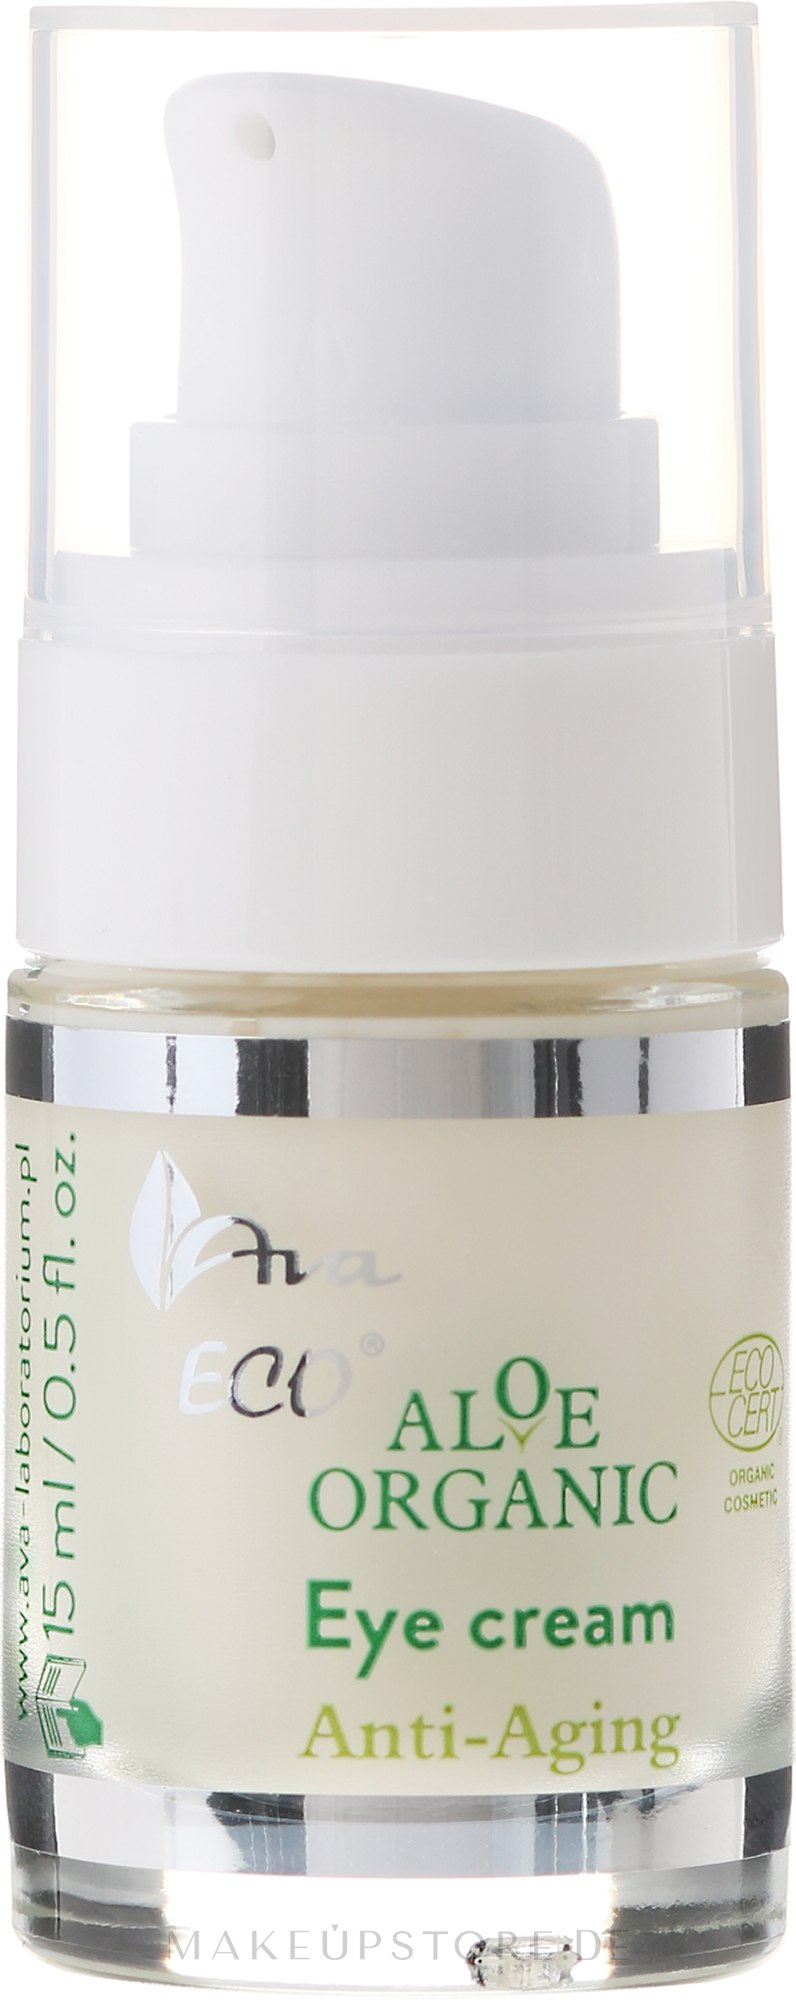 Anti-Faltencreme für die Augenpartie - Ava Laboratorium Aloe Organiic Eye Cream — Bild 15 ml